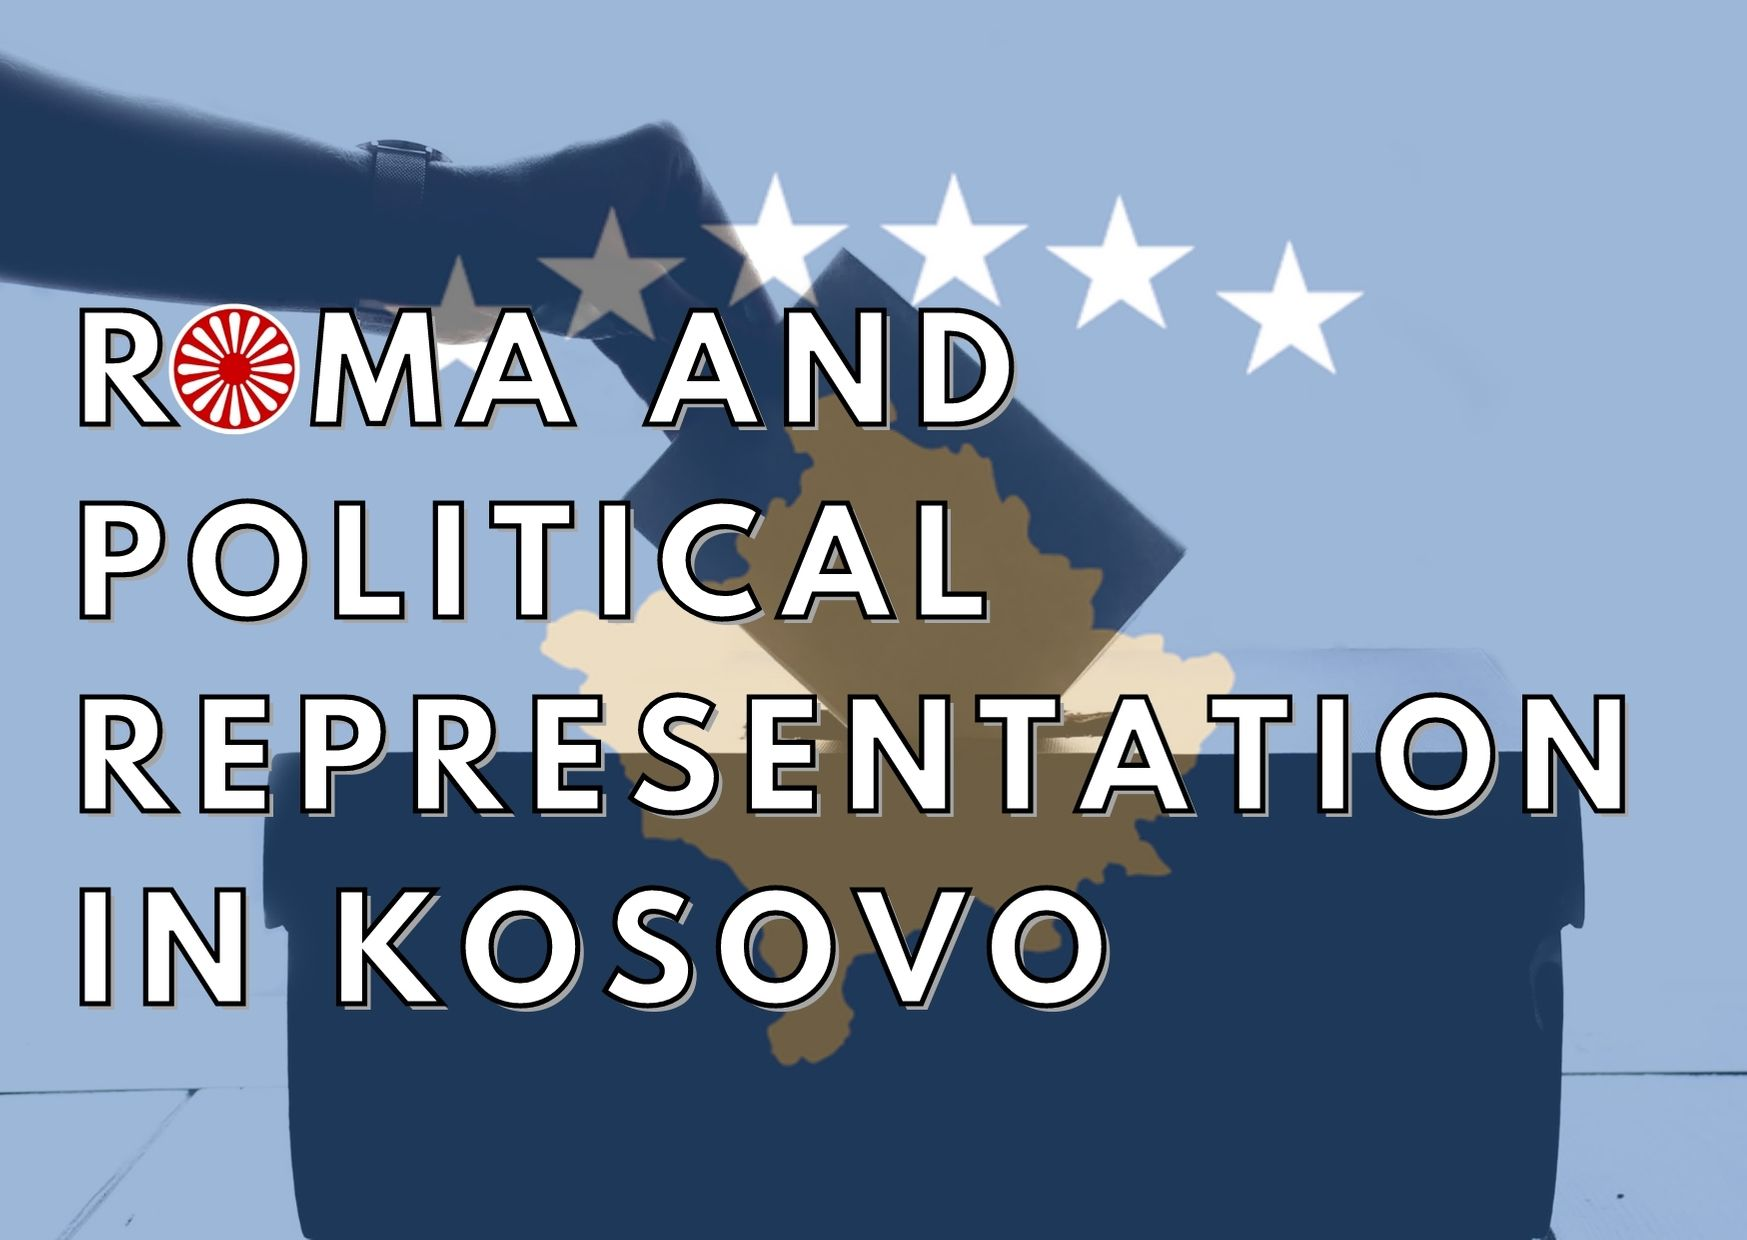 Copy of 62 g2 en roma representation kosovo